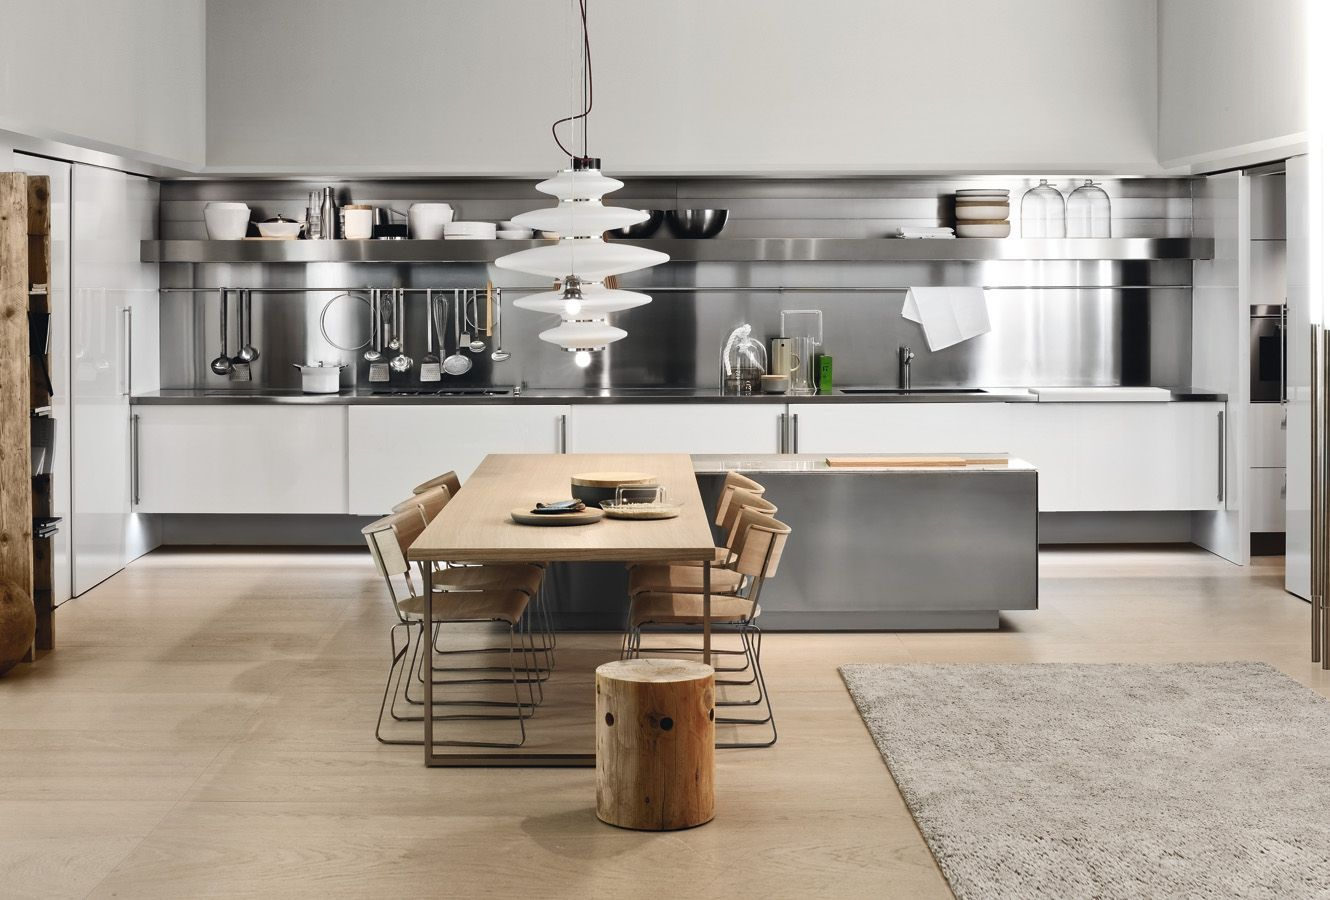 Contemporary Kitchen Design Simple Simple Kitchen With Aluminium Furniture Design For Small Space Design Inspiration